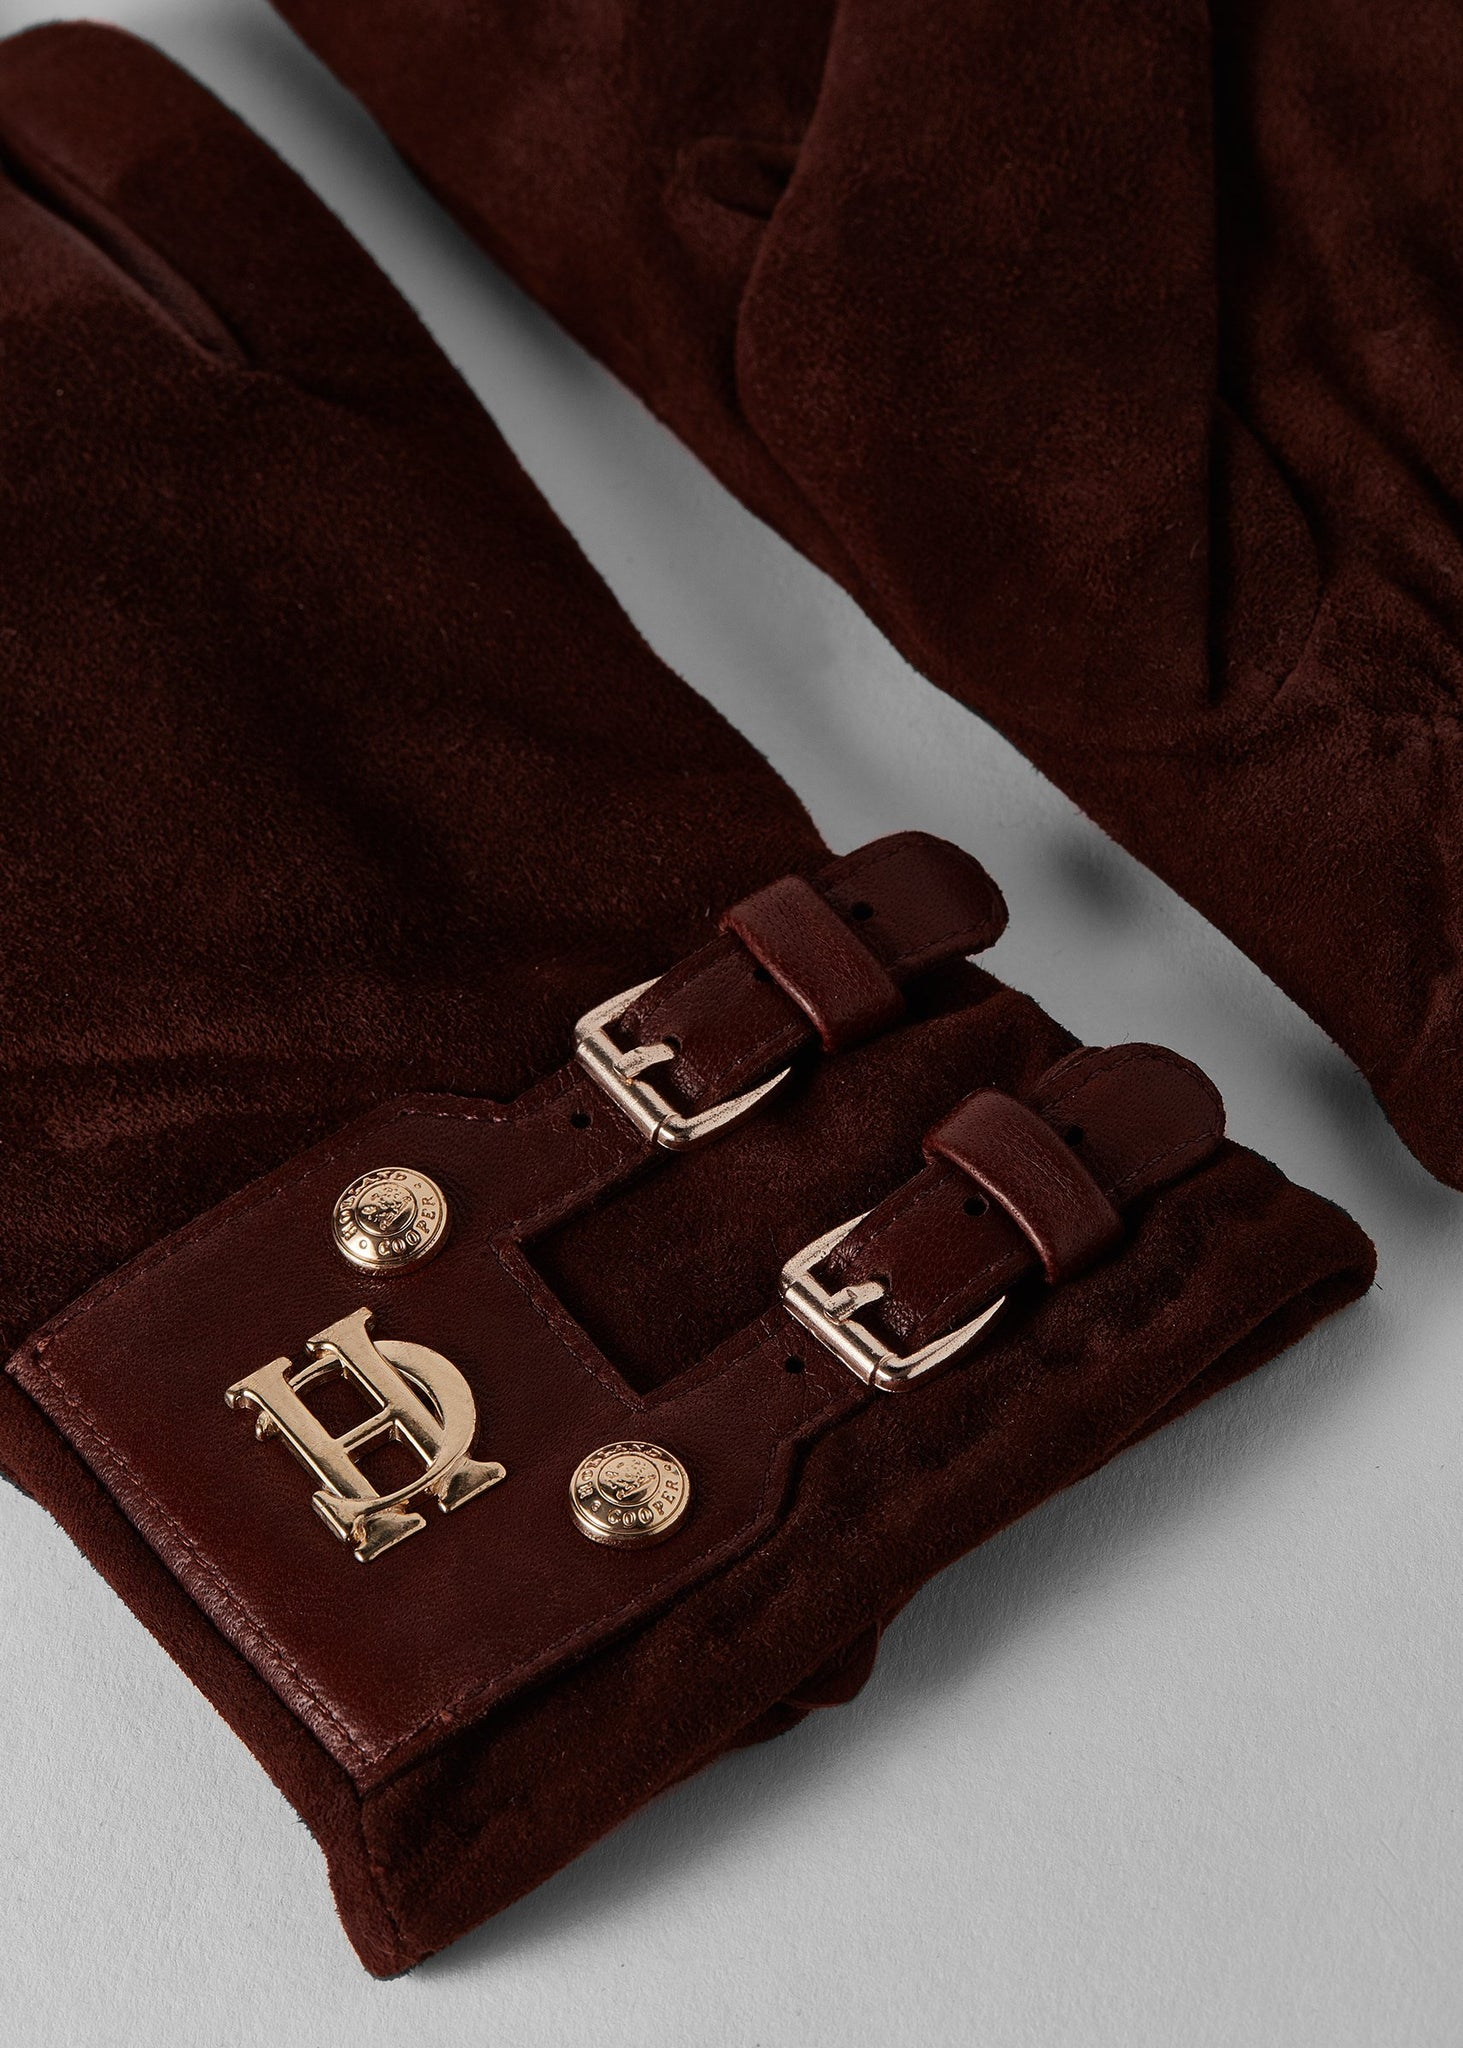 Monogram Suede Gloves (Chocolate)